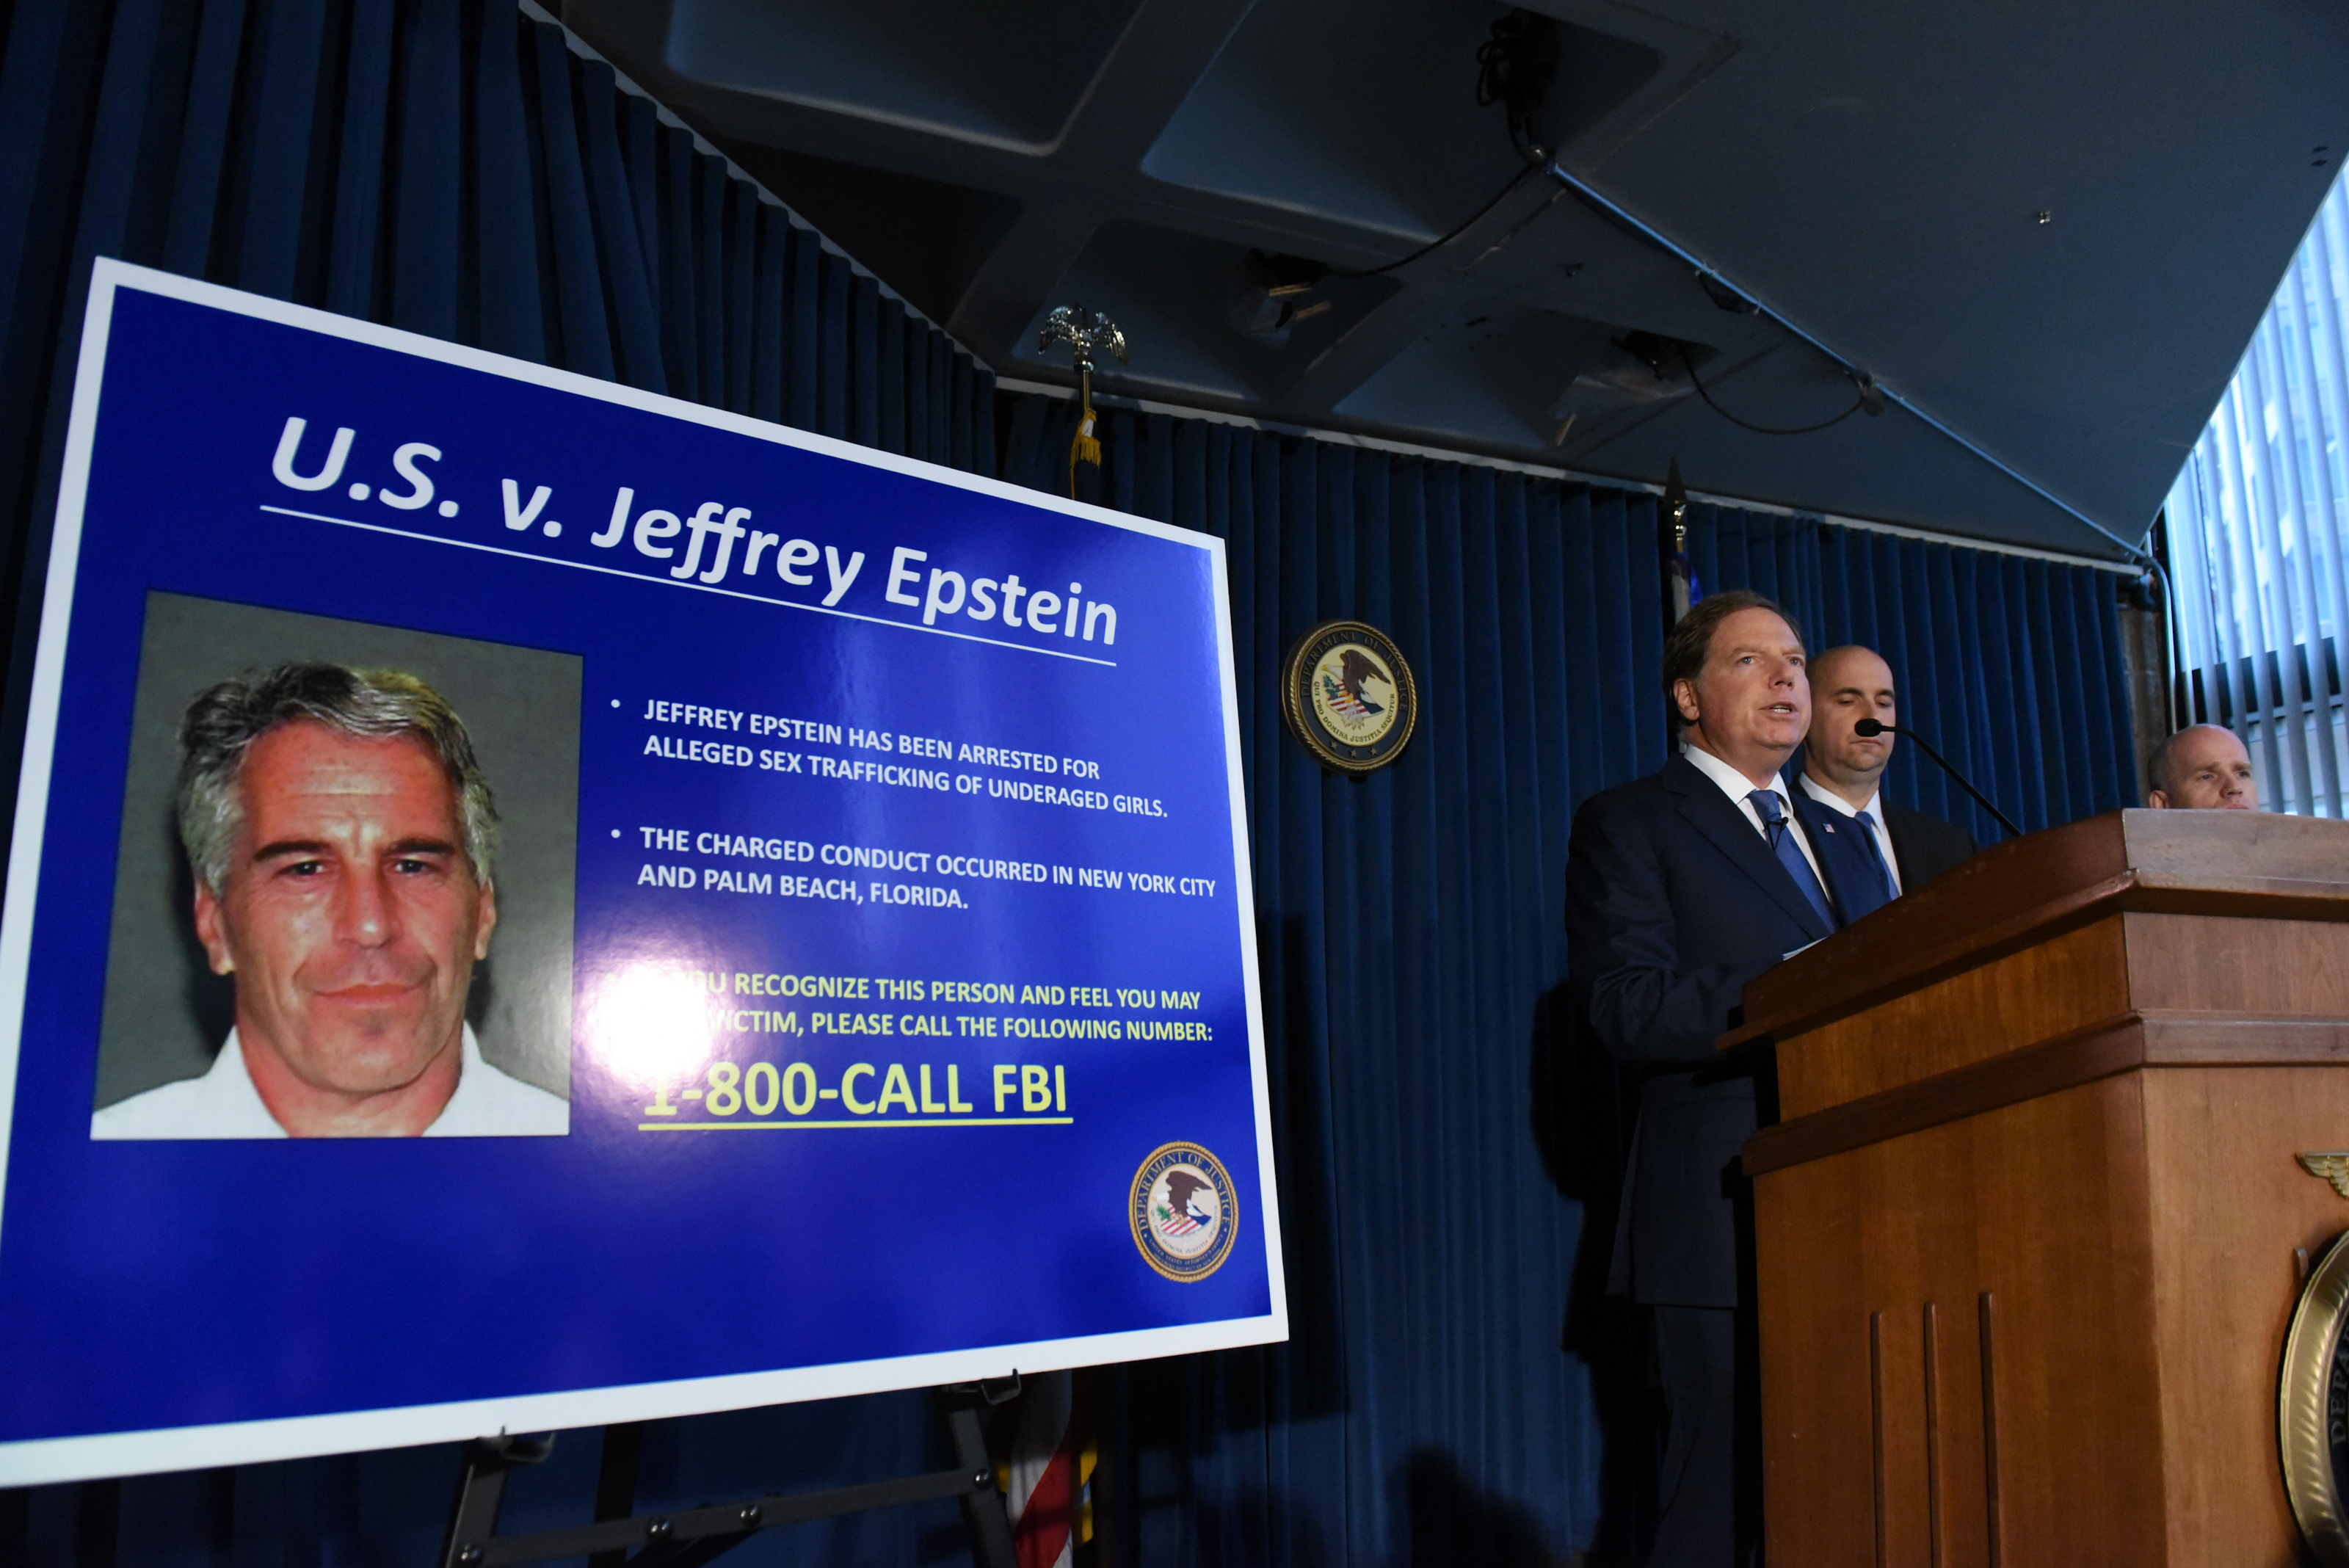 Charges are announced against Jeffrey Epstein at a press conference on July 8, 2019 in New York City